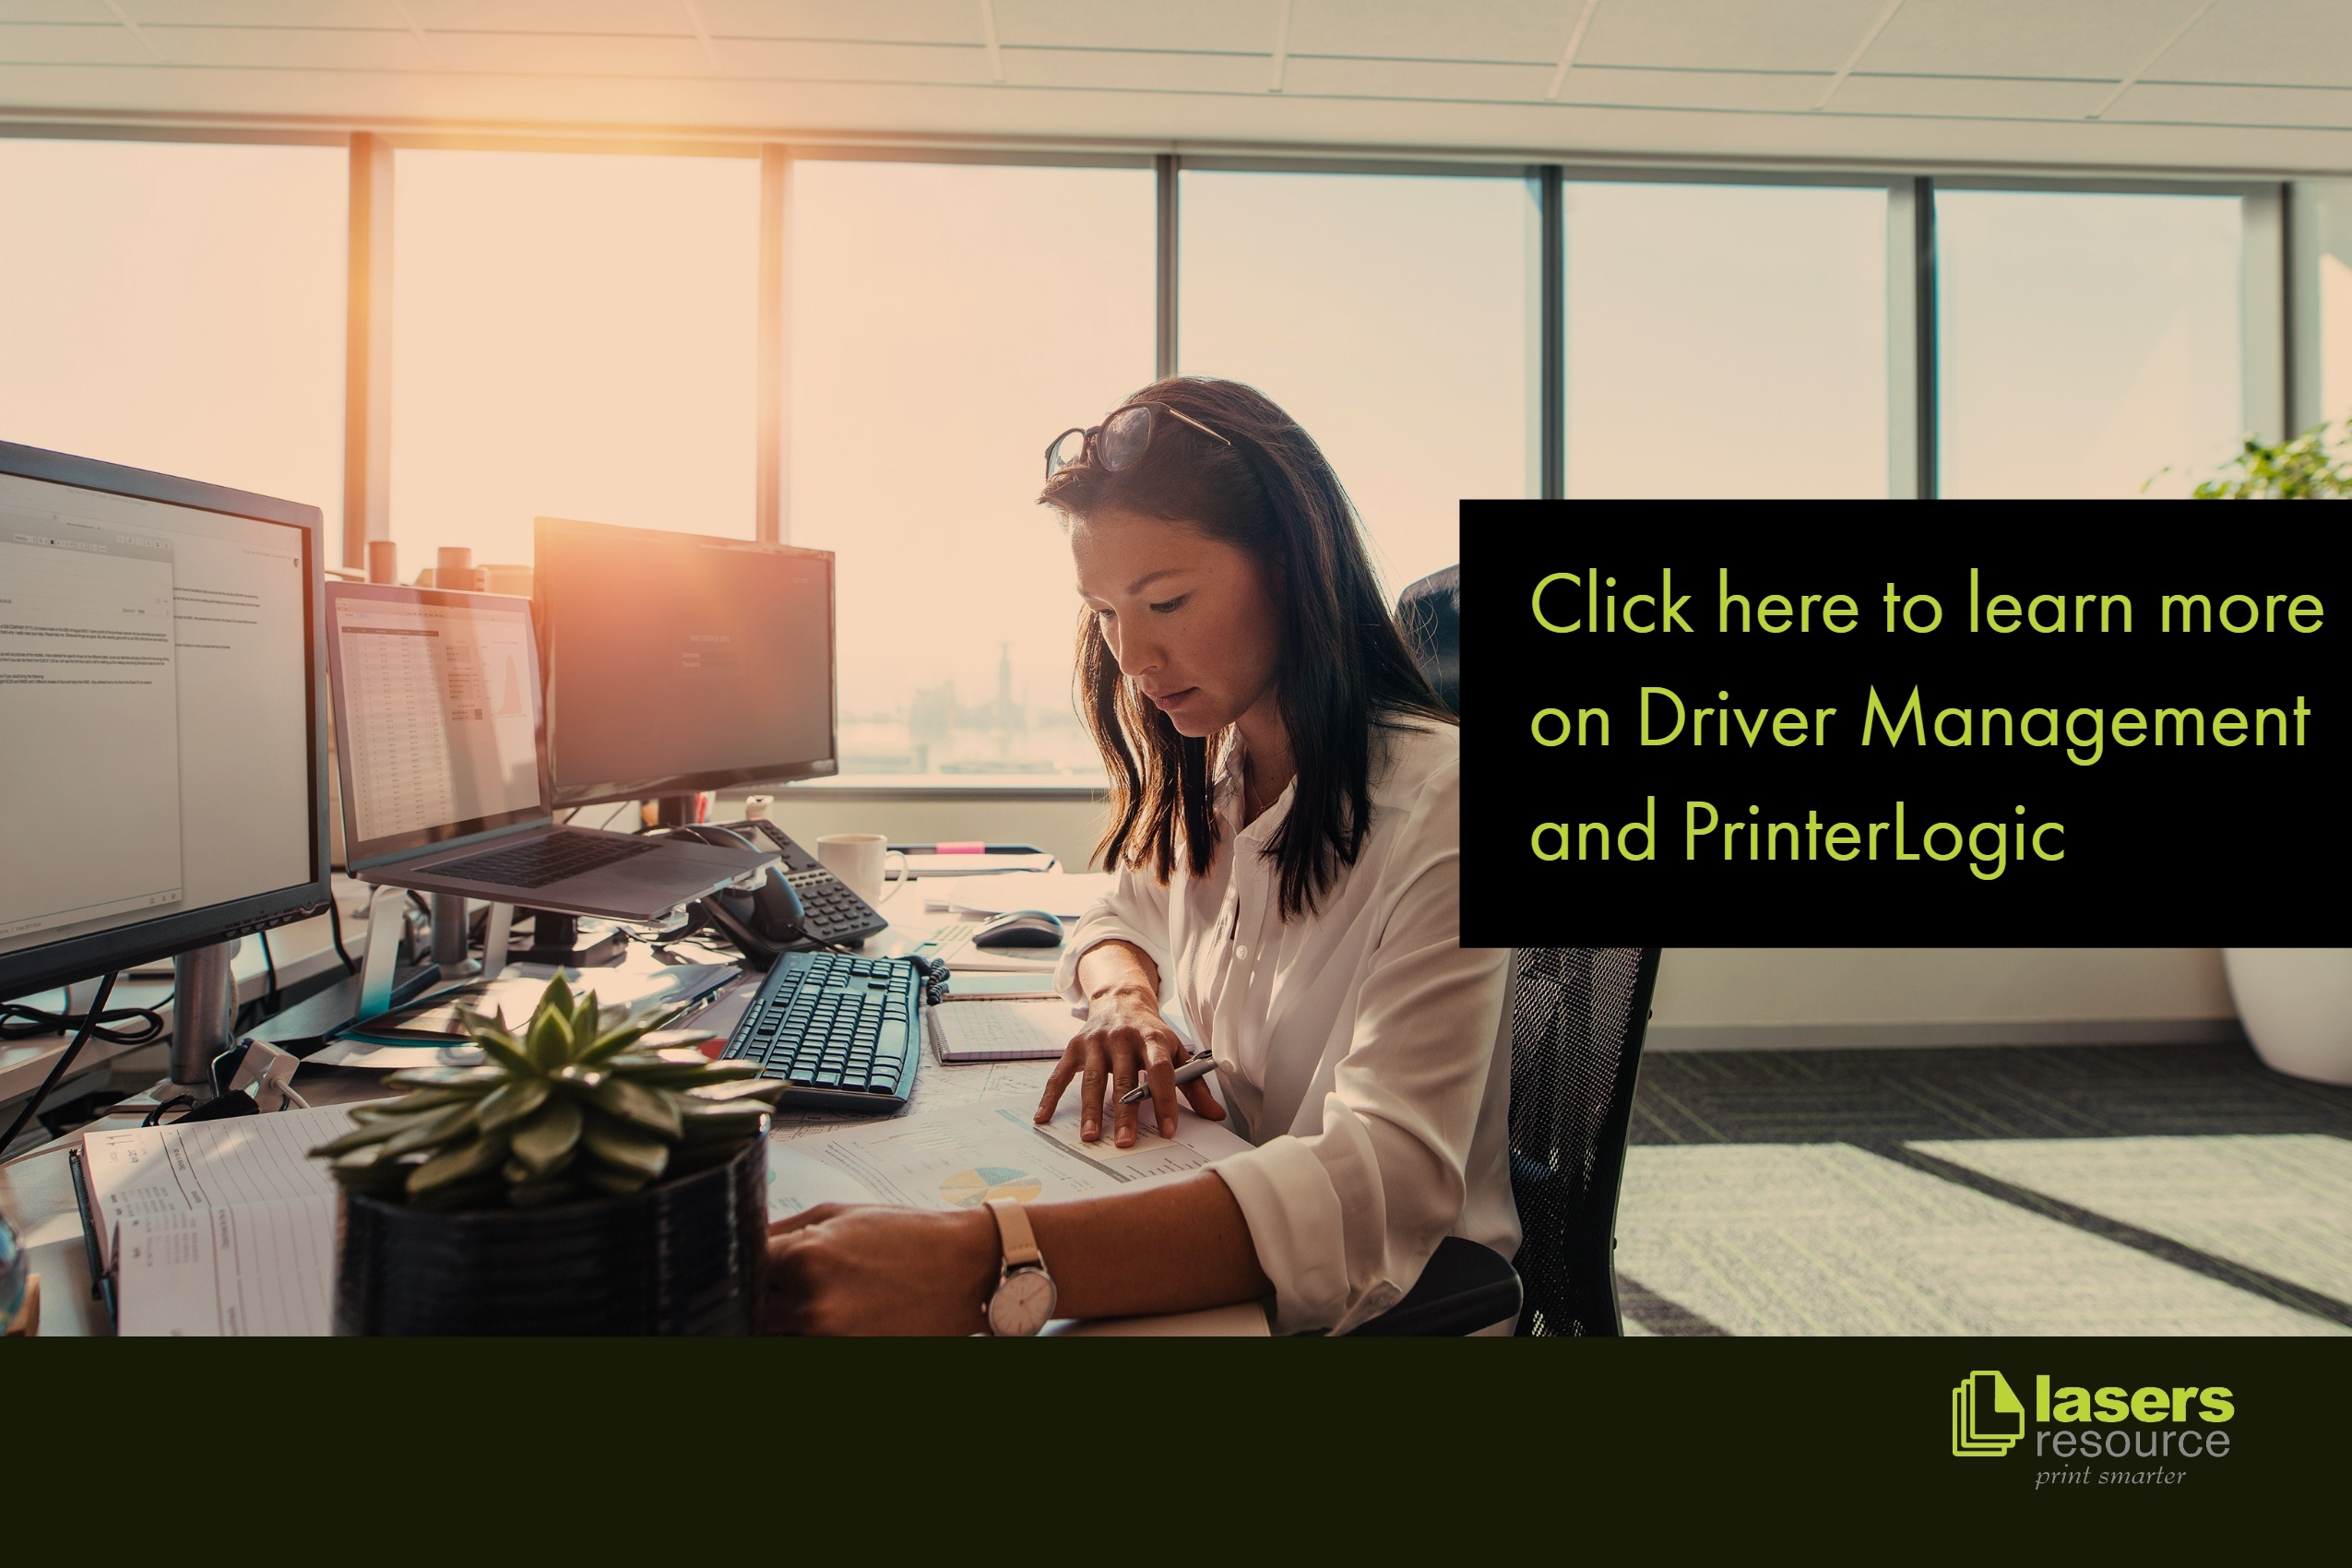 Click here to learn more on Driver Management and PrinterLogic